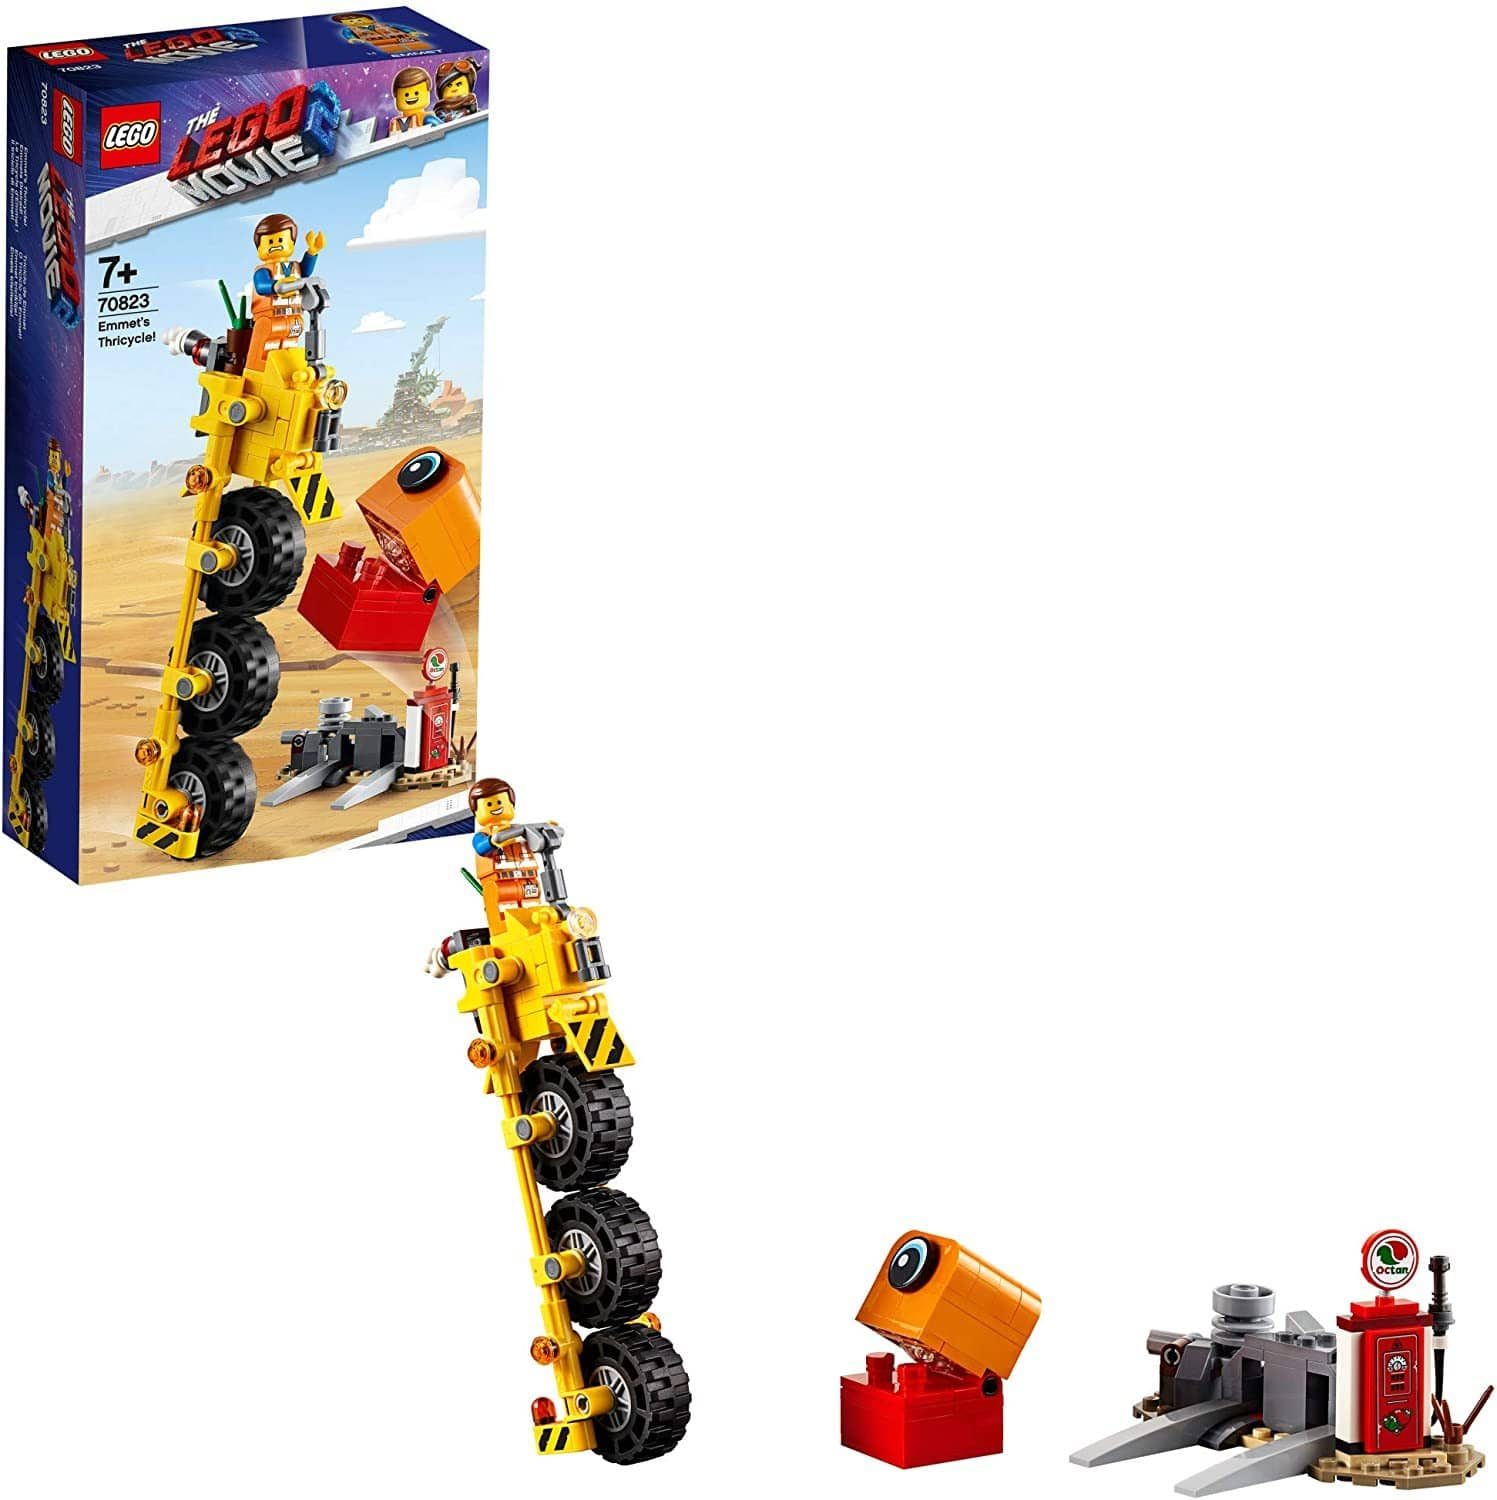 Lego The Lego Movie 2 Emmet'S Thricycle; 70823 Three Wheel Toy Bicycle Action Building Kit For Kids (173 Pieces)-Kidding Around NYC